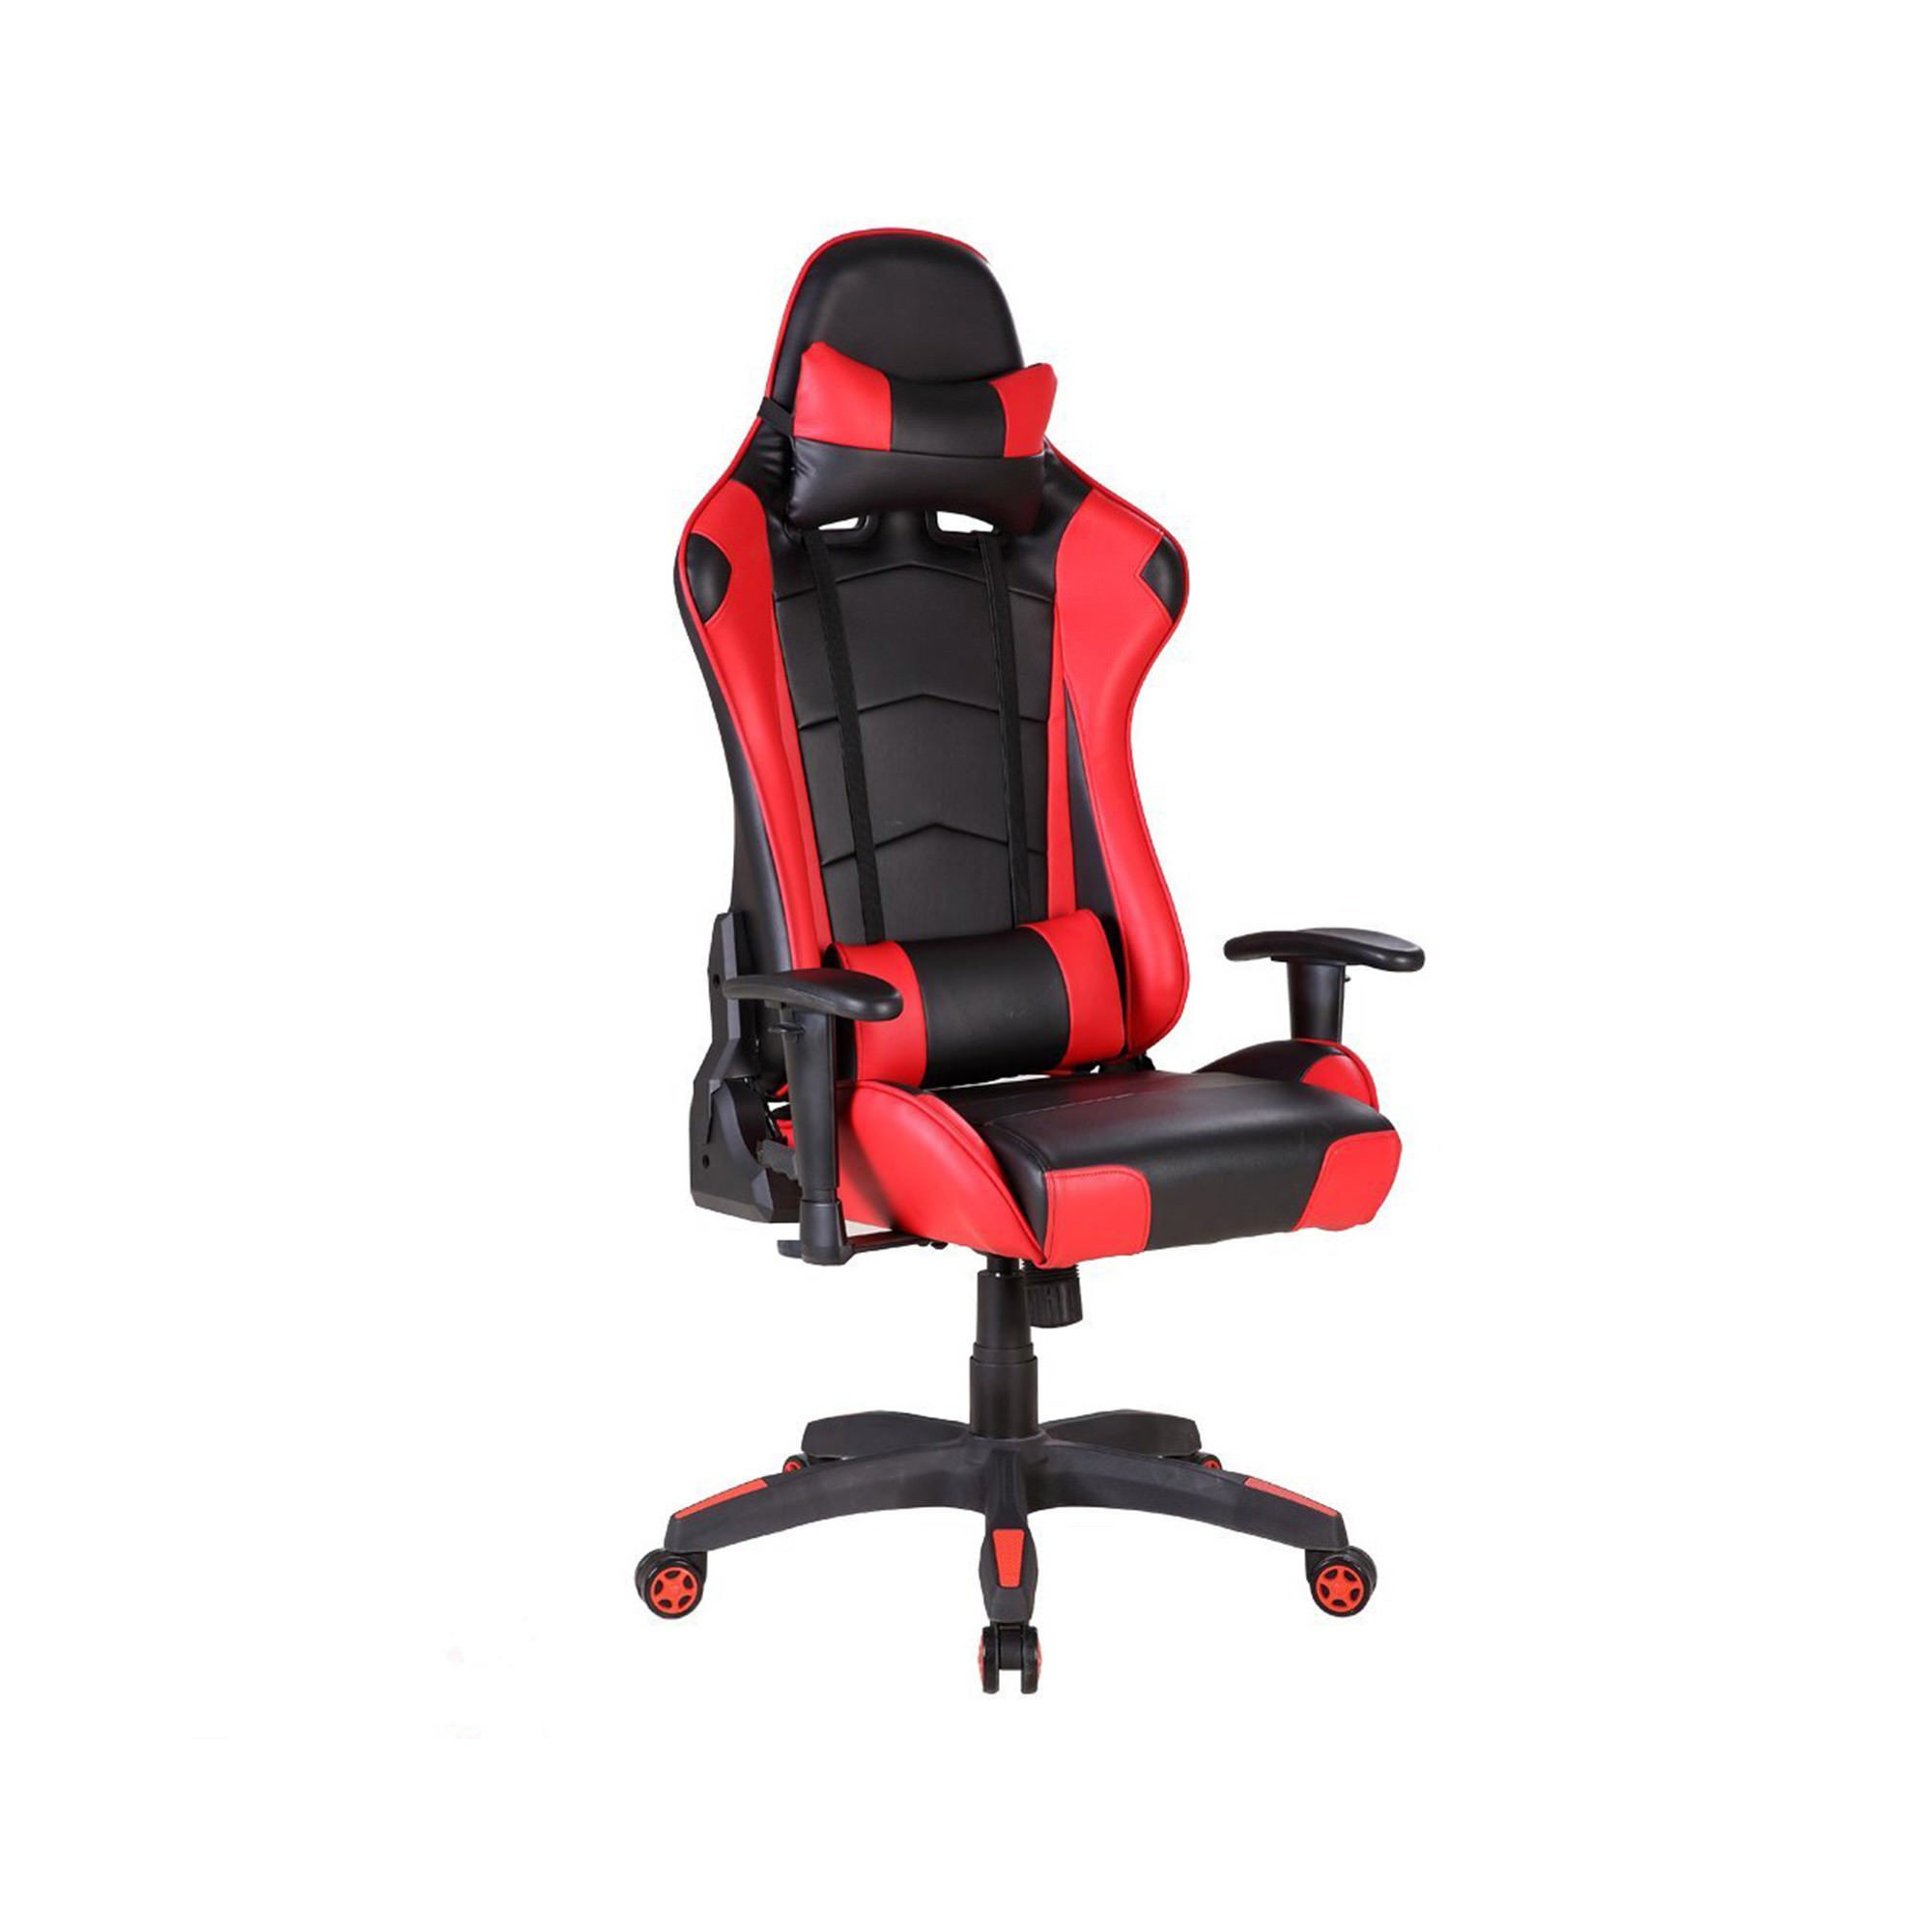 meilleur service bf5e2 609a8 Fauteuil Chaise Gaming Pro